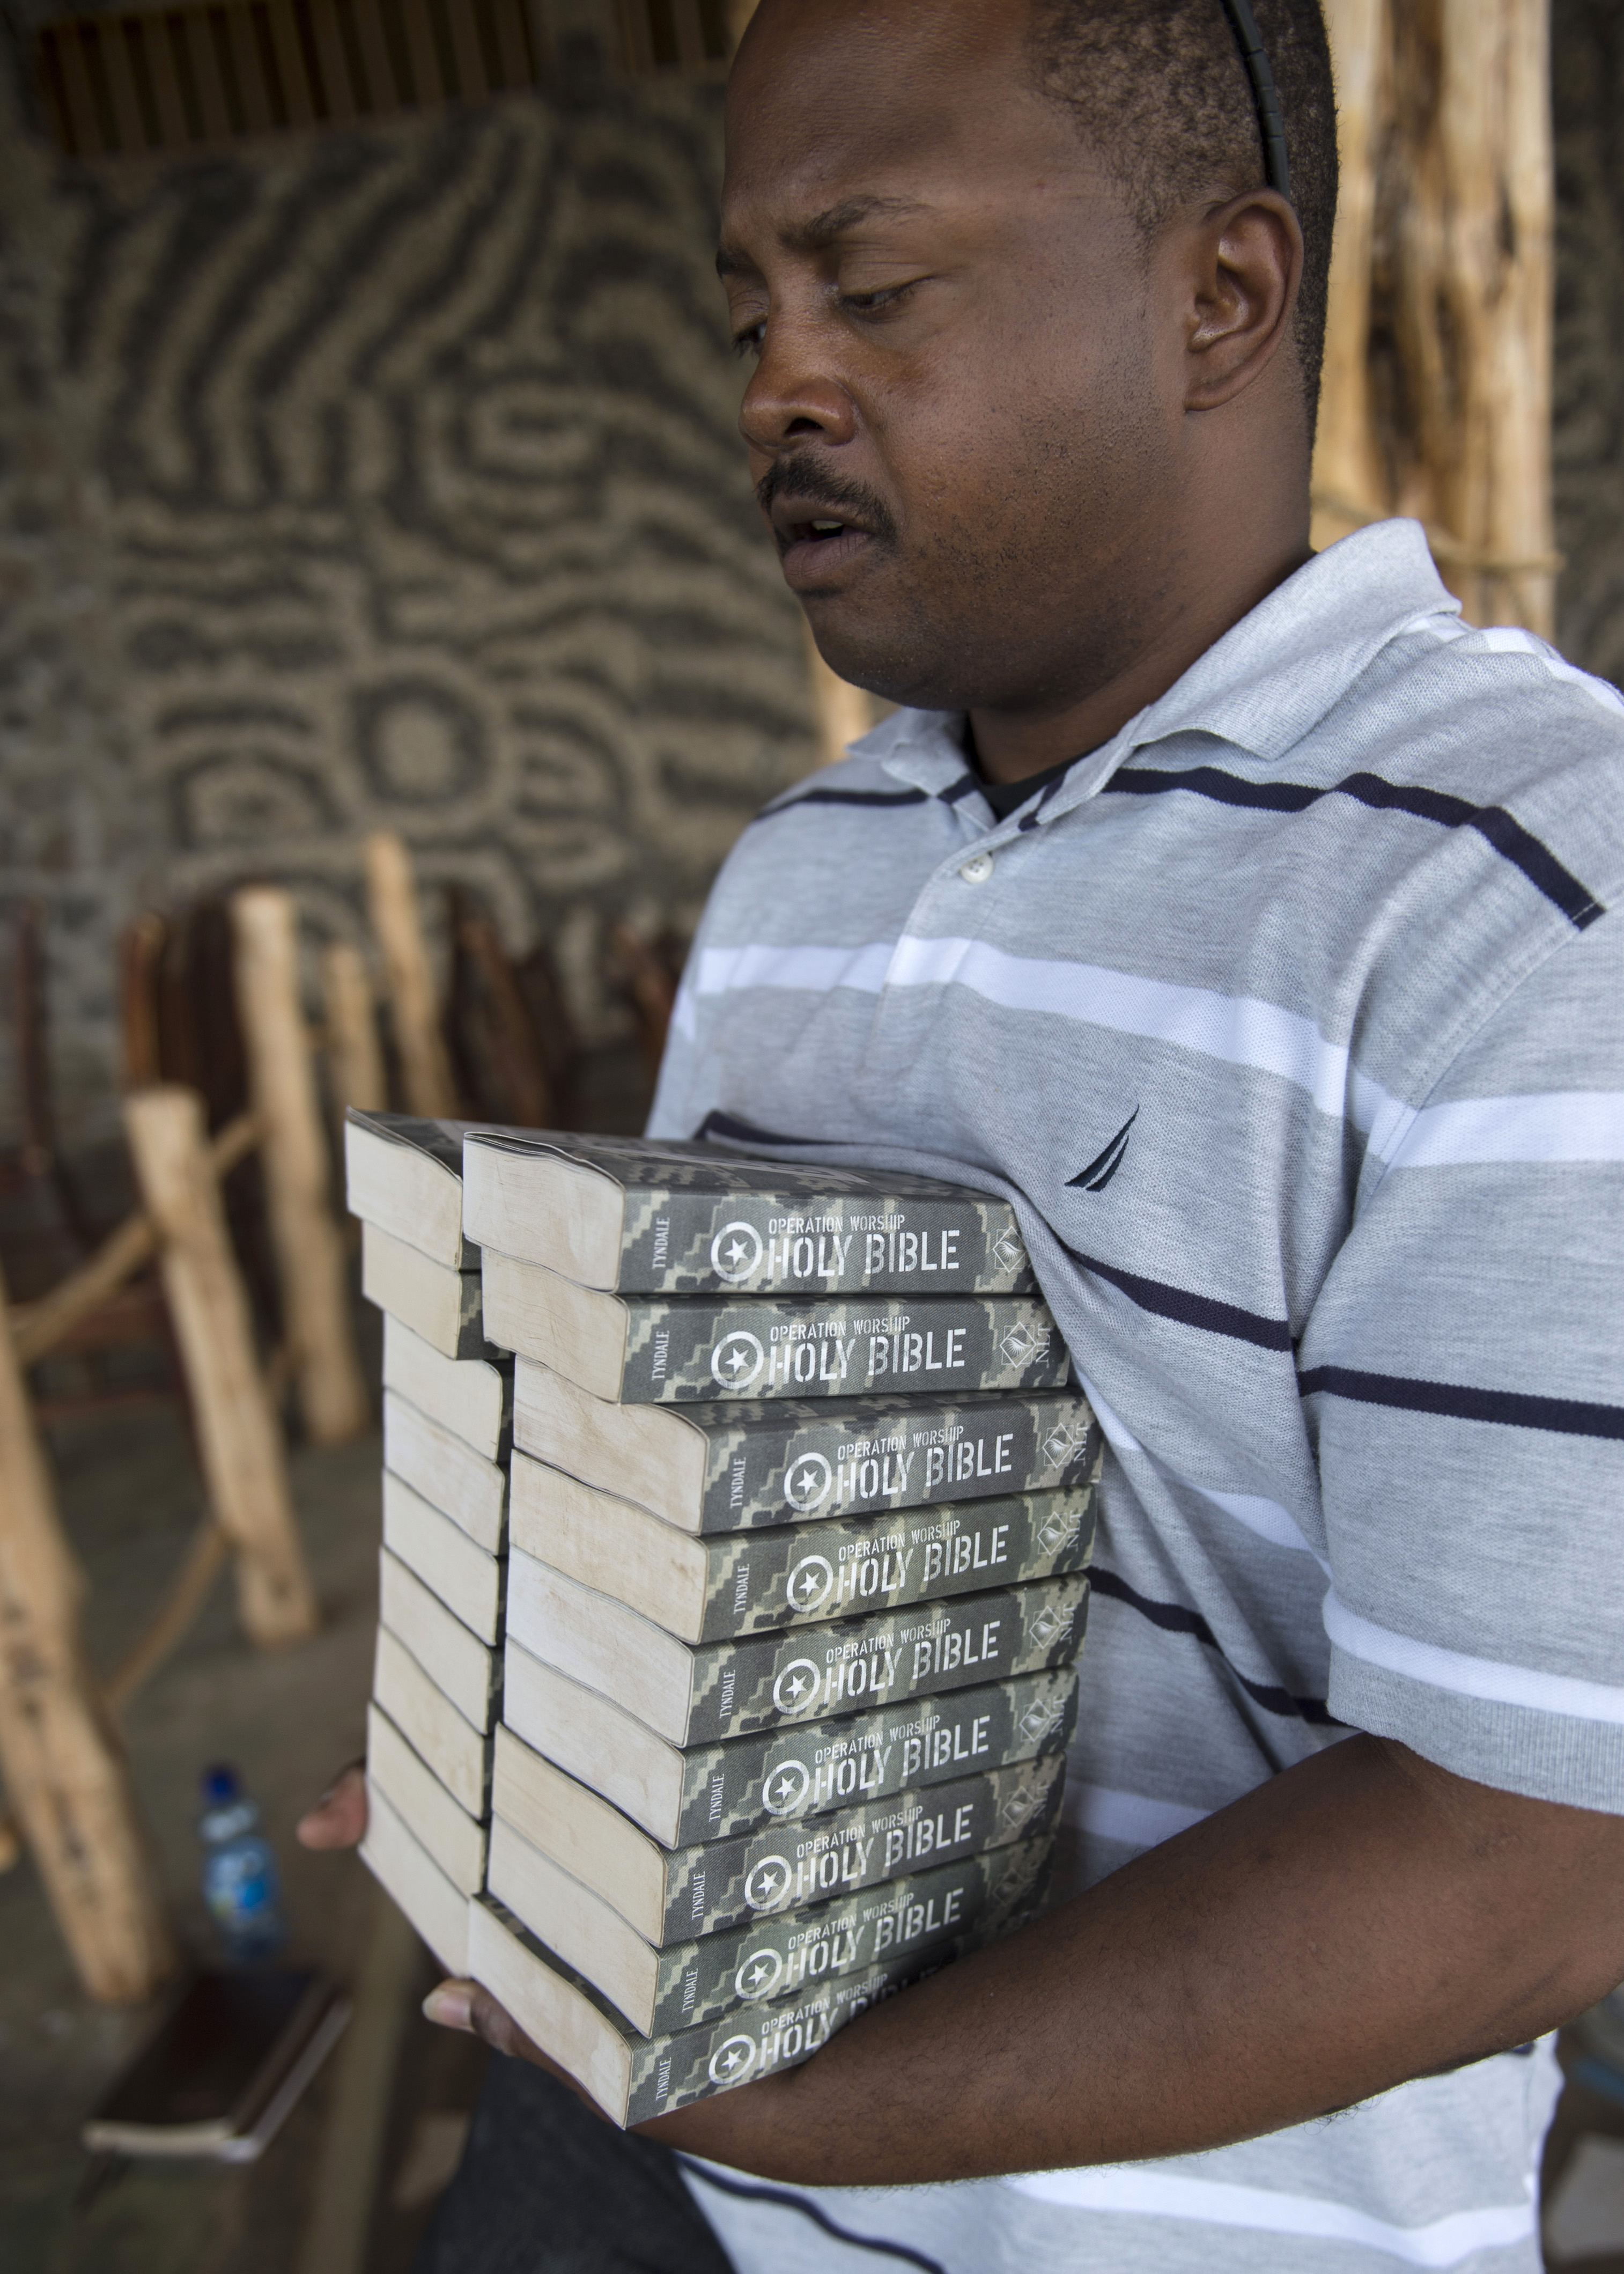 U.S. Navy Petty Officer 2nd Class Rory Carmouche, Combined Joint Task Force-Horn of Africa Religious Programs Specialist, gathers Bibles for Easter service on Apr. 5, 2015 for members in the CJTF-HOA area of responsibility.  As a Religious Programs Specialist, Carmouche provides religious and administration assistance for the chaplains. (U.S. Air Force photo by Staff Sgt. Kevin Iinuma)